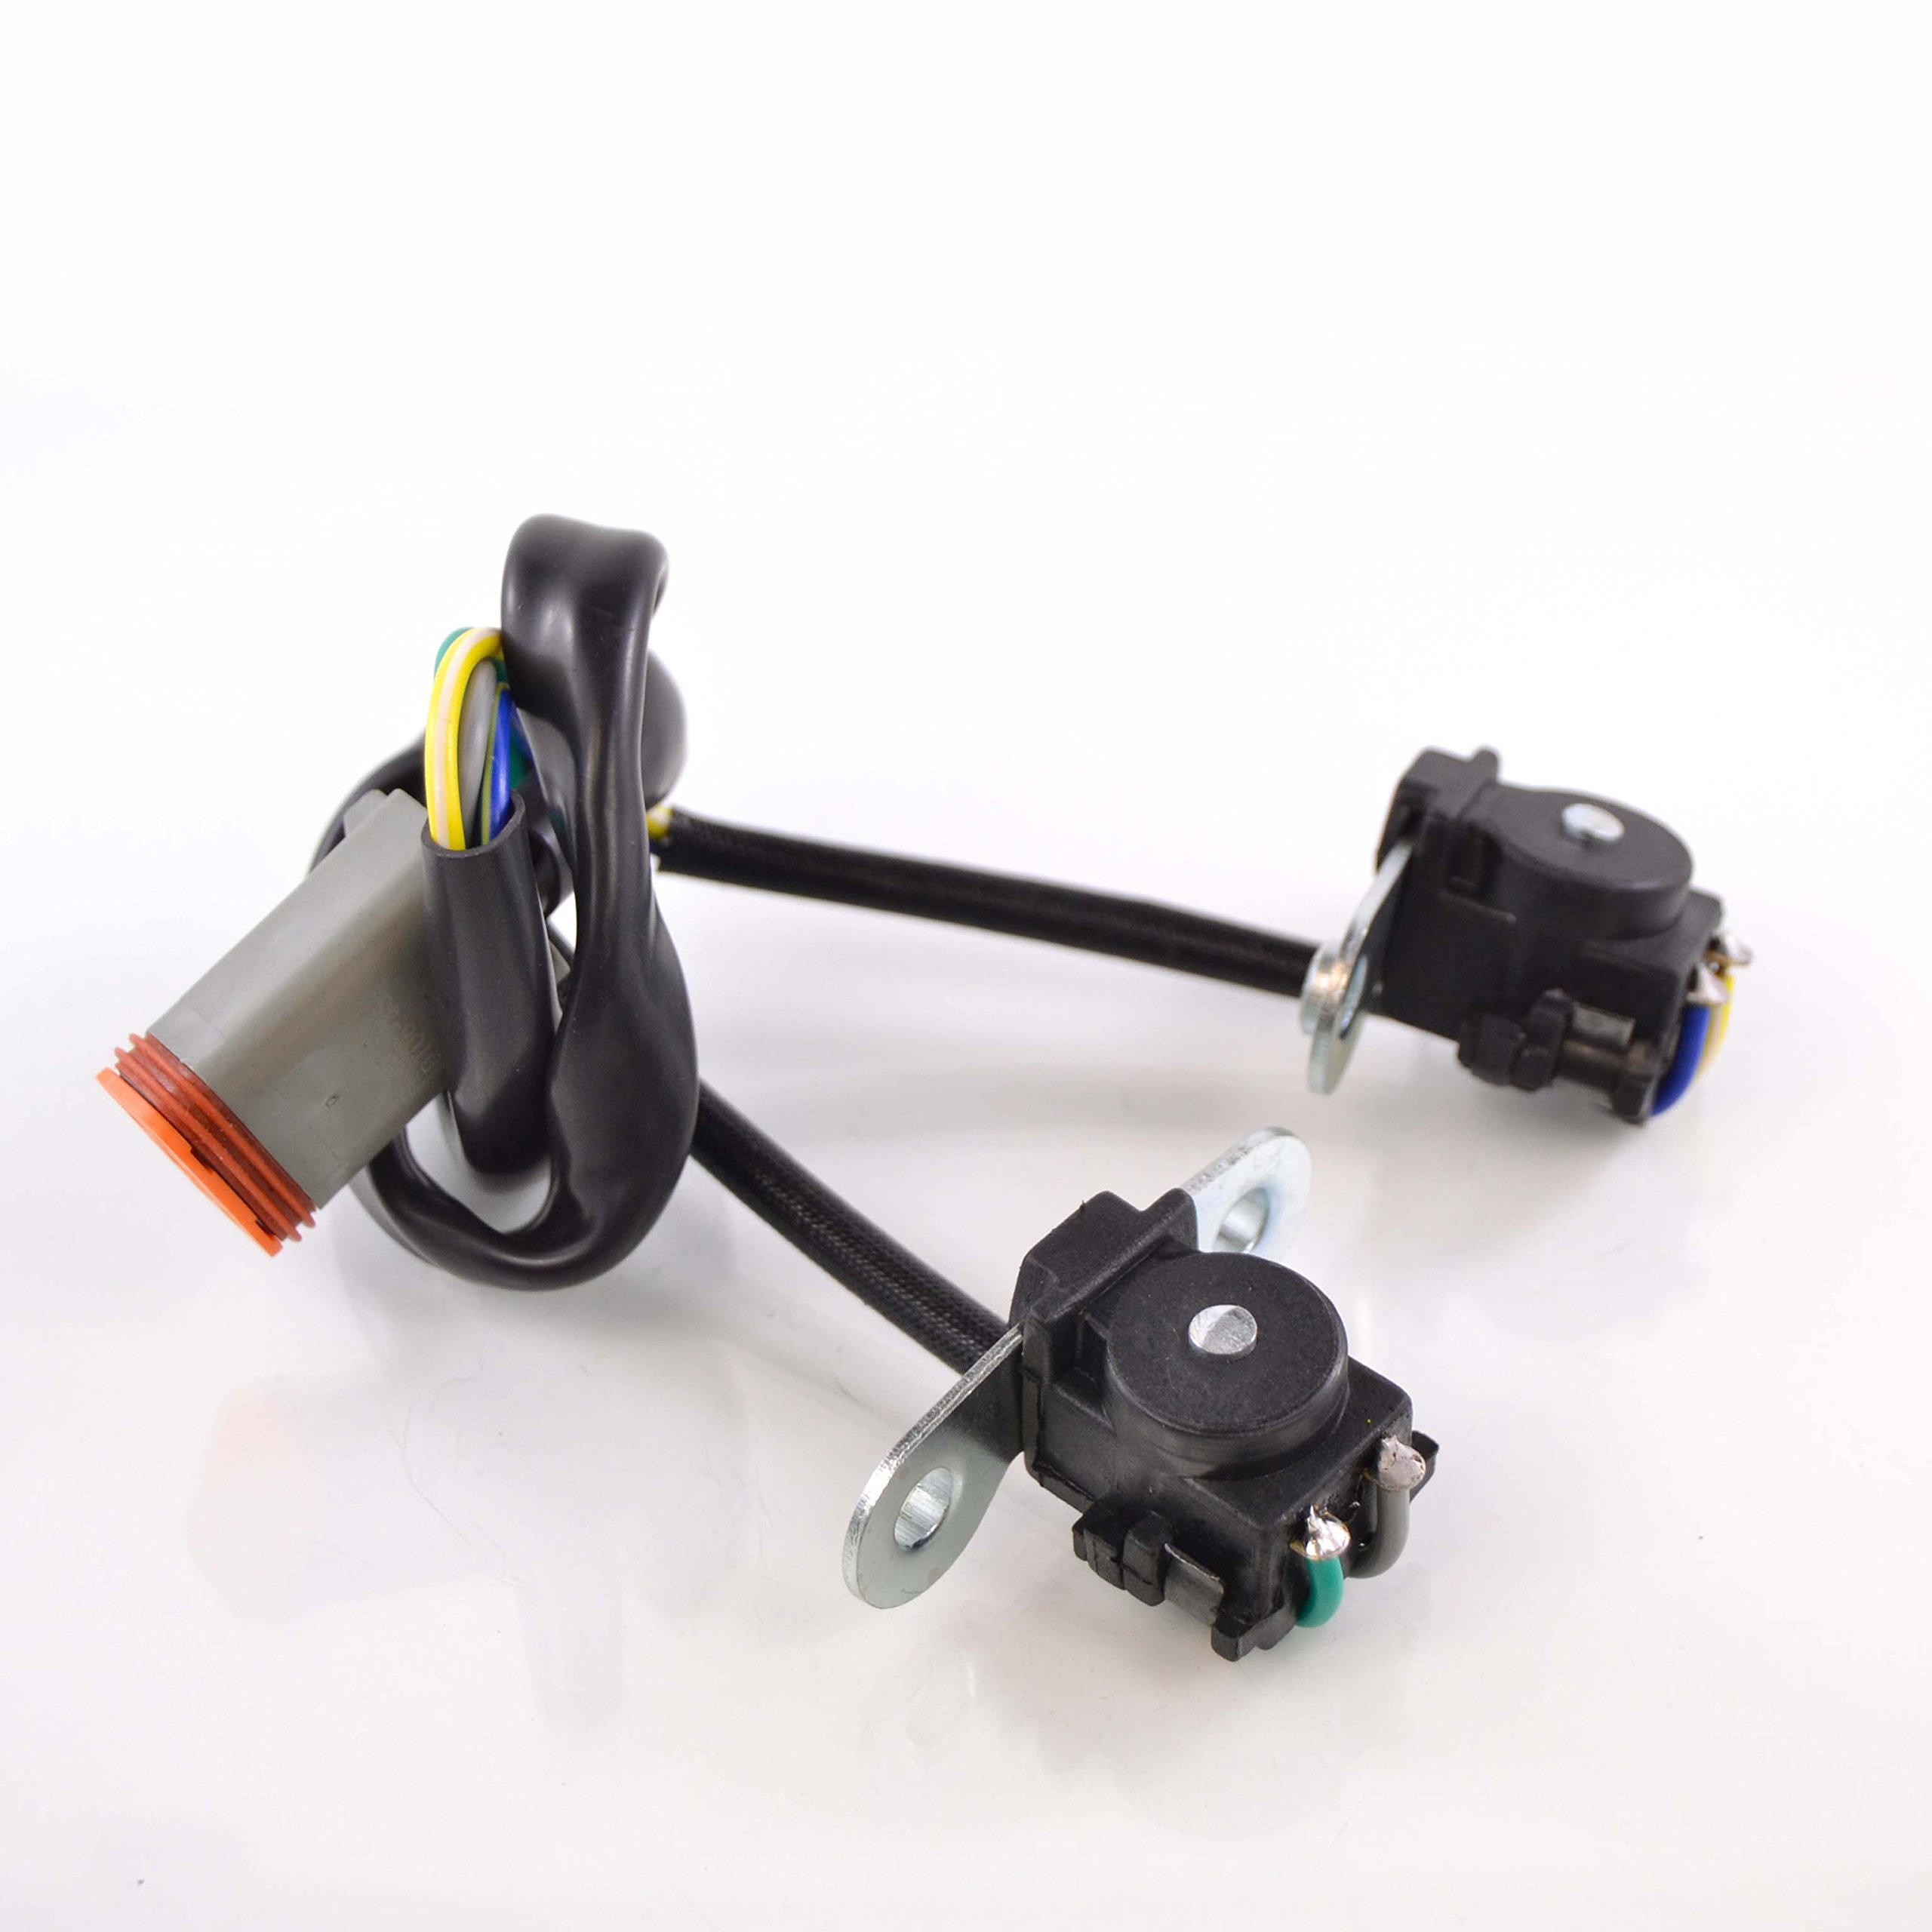 Pick Up Pulsar Coil For Ski Doo Adrenaline/Grand Touring Sport 500 600 700 / Mach 1 700 / Mach Z 800 / MX Z 500 600 700 Sport/Renegade / Summit 600 700 800 / Summit 800 HO / 1999-2015 by Mister Electrical (Image #4)